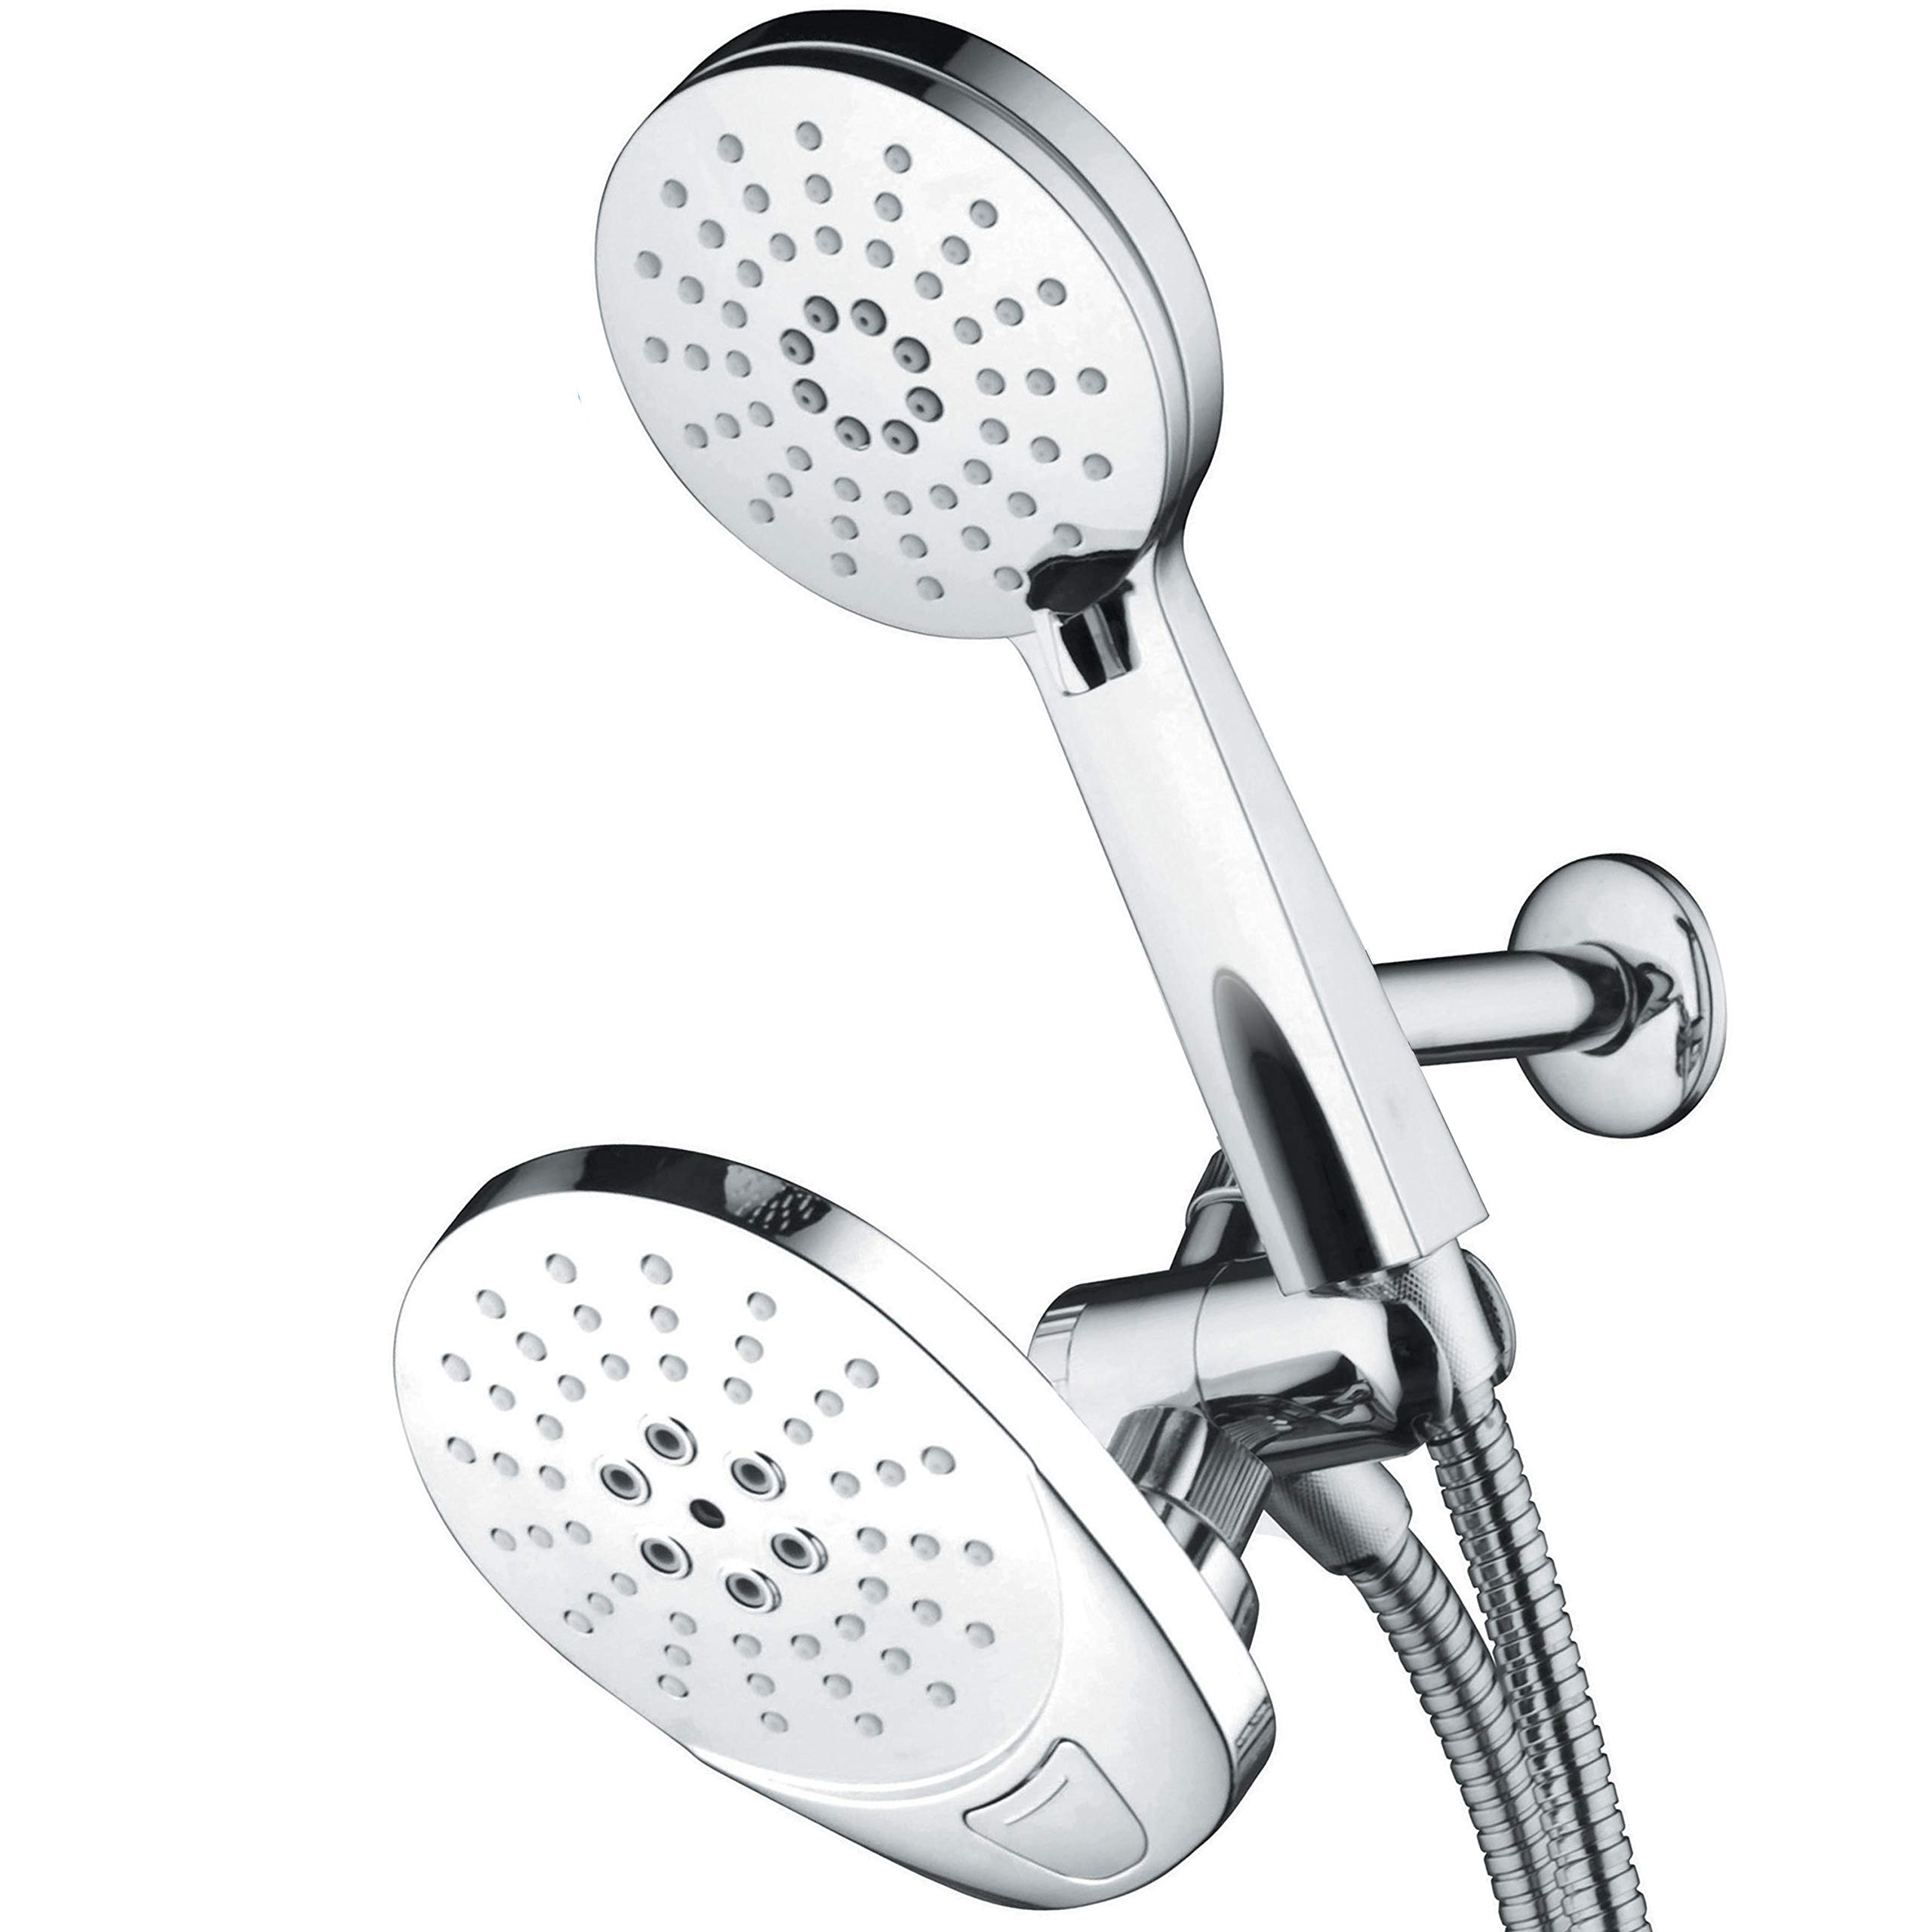 AirJet-600 Hybrid 3-in-1 High Pressure Luxury Rainfall Shower Combo with High-Velocity Flow Accelerator(TM) for More Power with Less Water! Height-Extend Design / Low-Reach Push-Button Flow Control